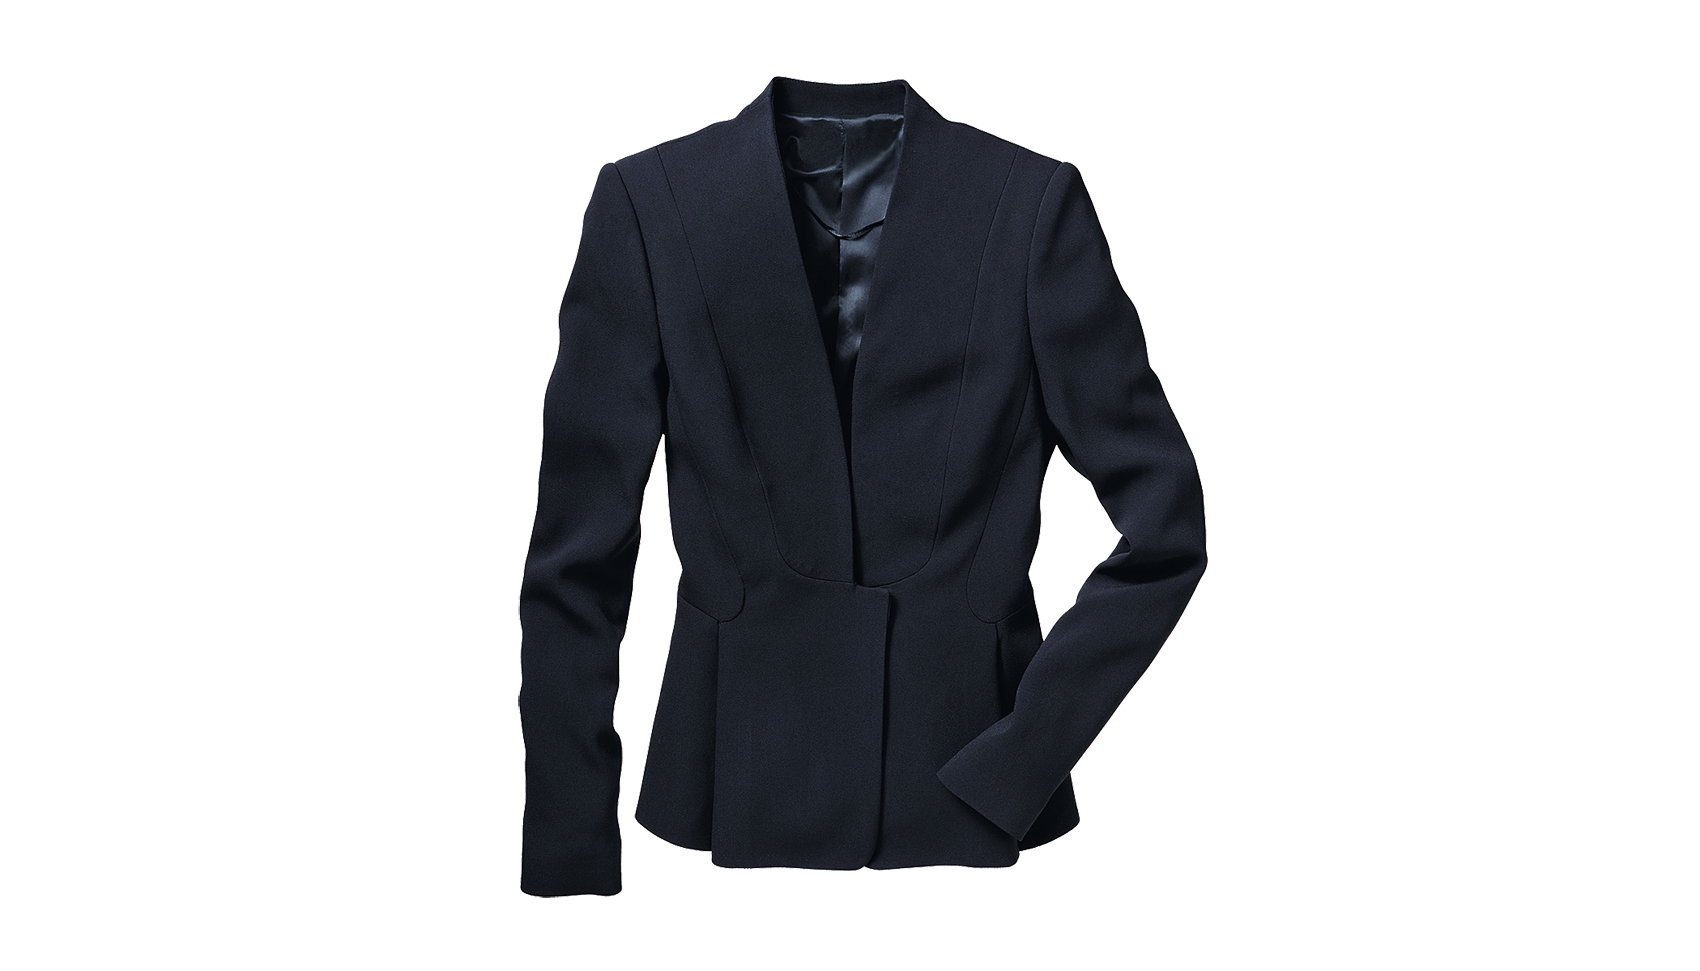 A Tailored Jacket